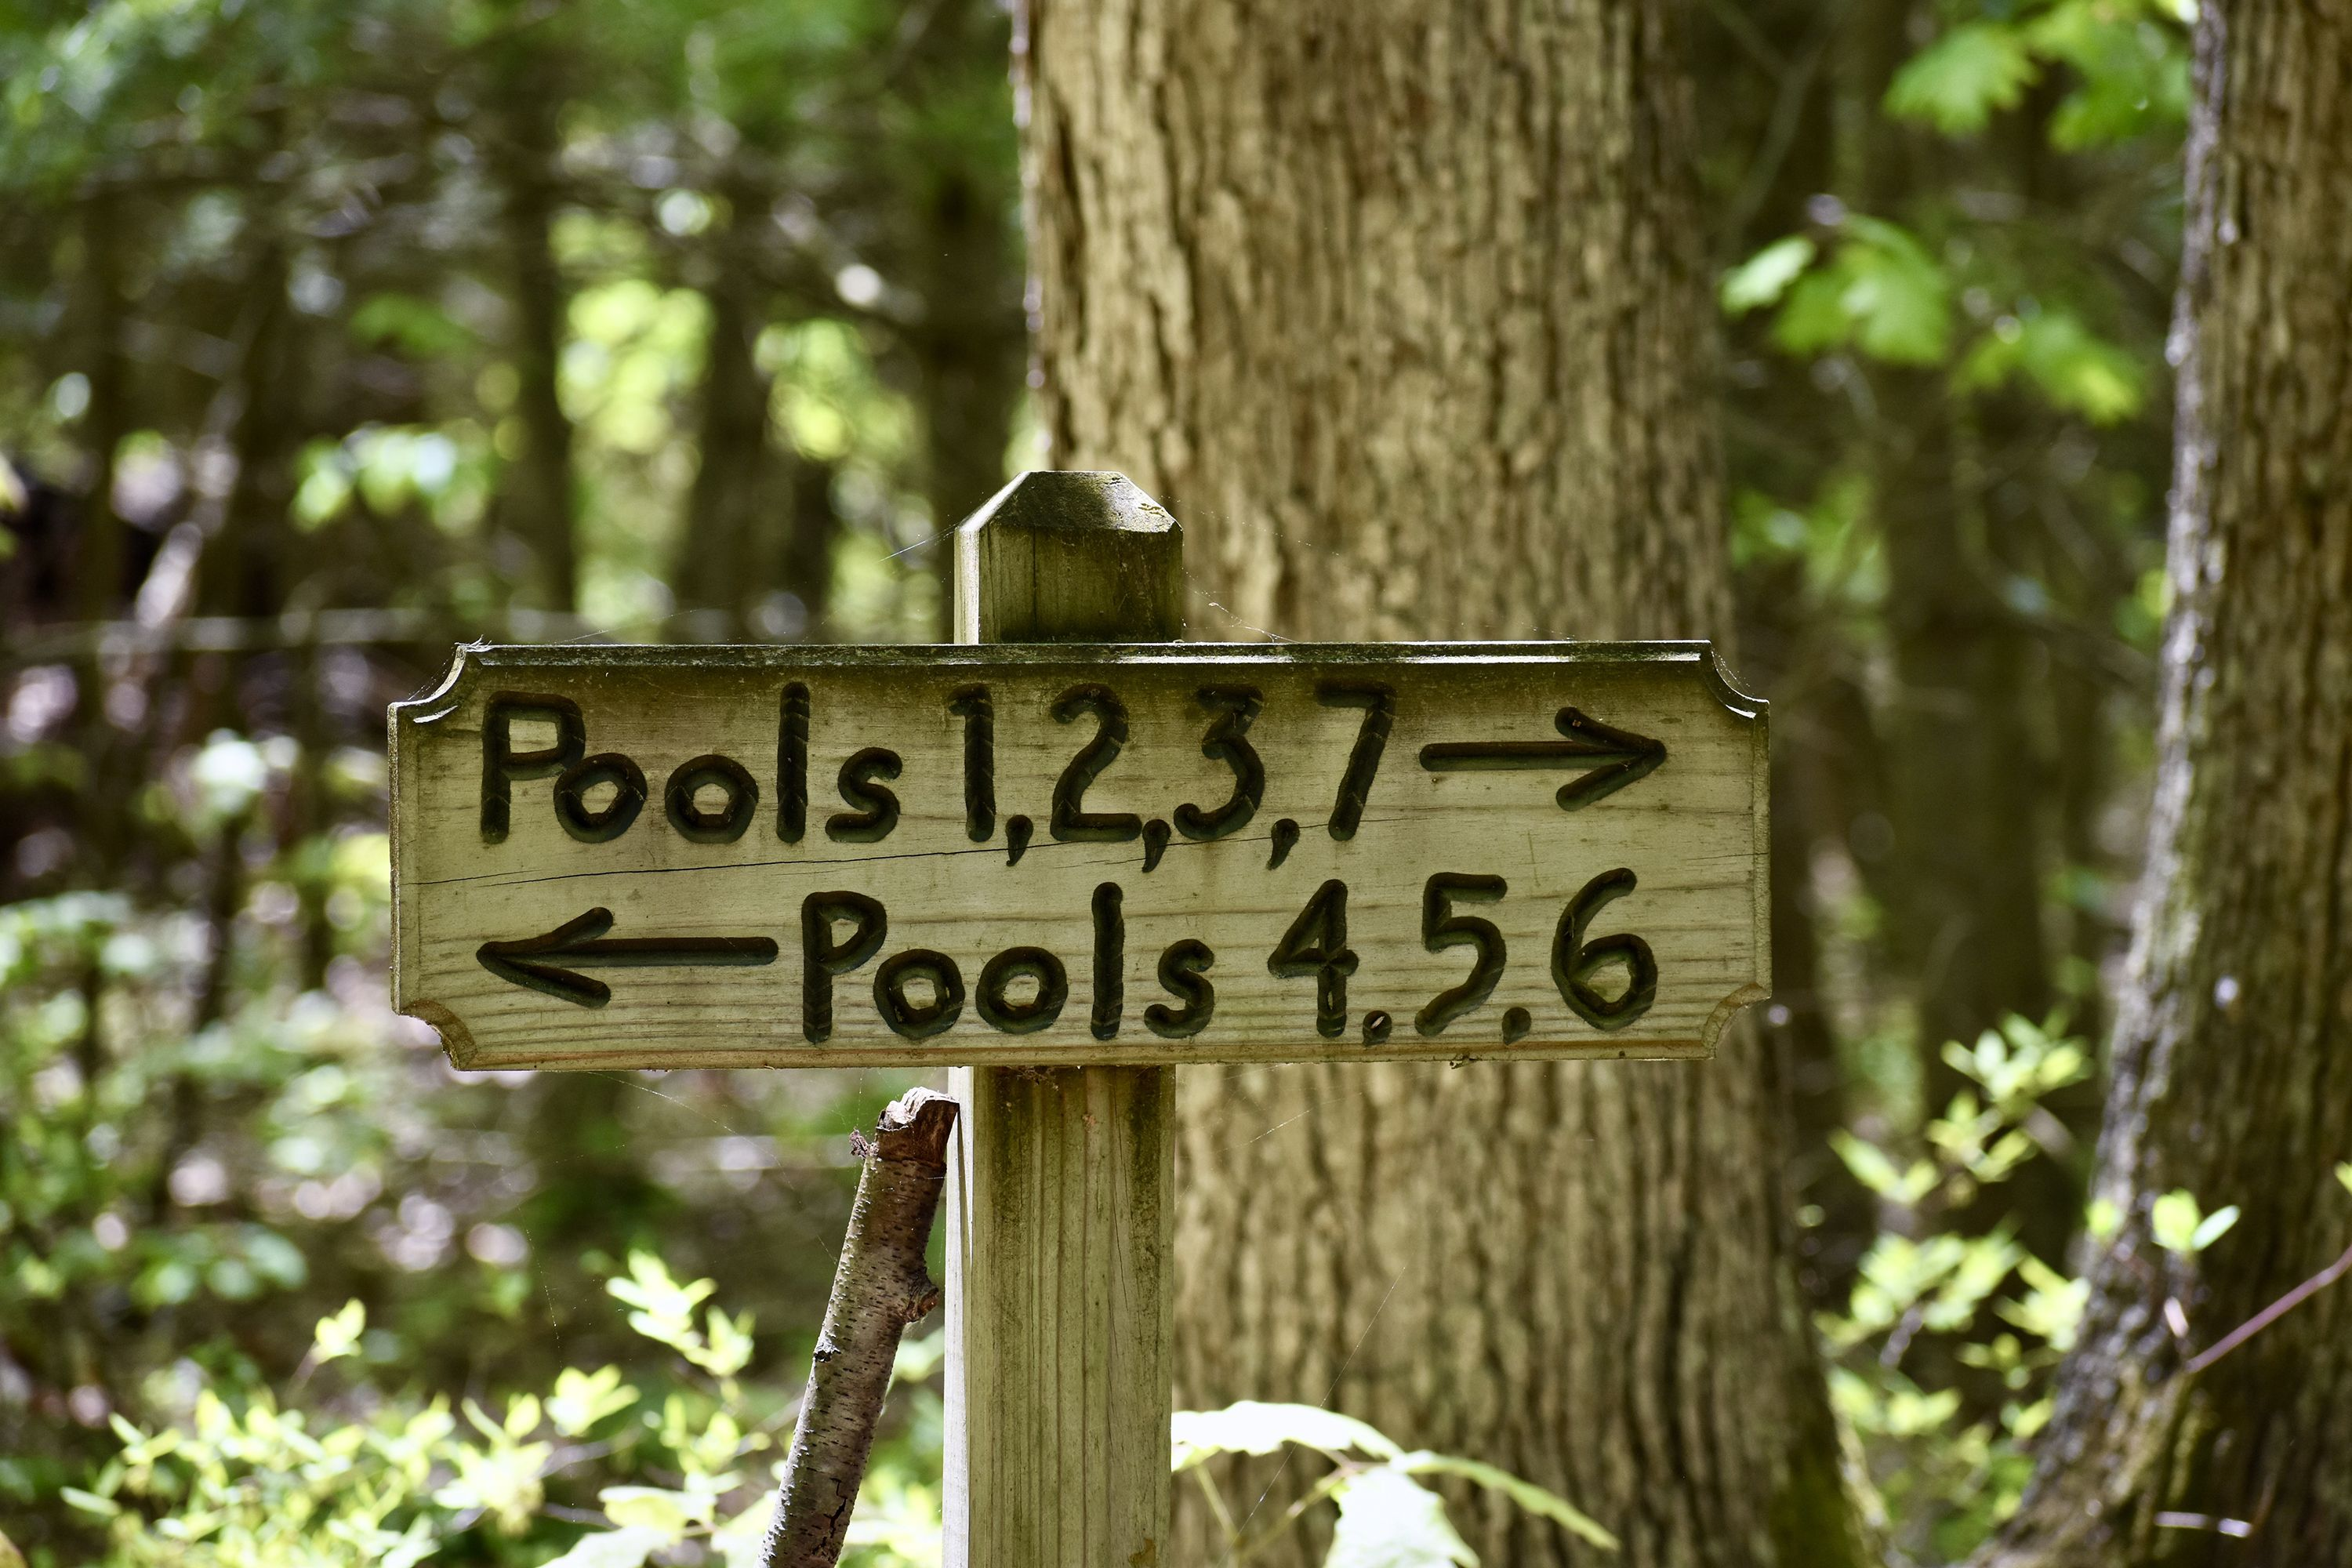 A wooden sign marks the way to seasonal vernal pools. Pools 1, 2, 3, 7 with an arrow pointing right is carved into the top of the sign. The bottom reads Pools 4, 5, 6 with an arrow to the left.